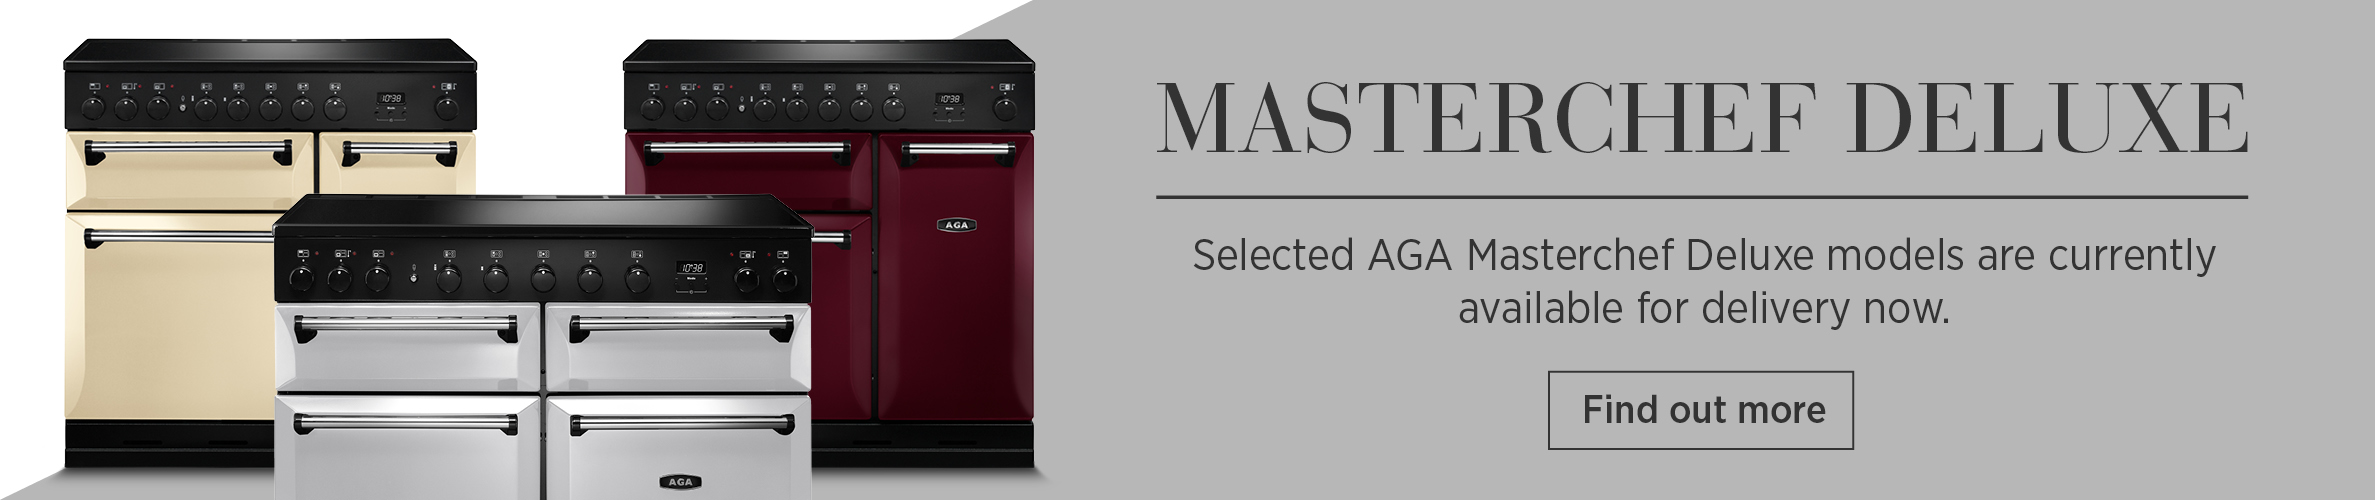 AGA Masterchef Deluxe models available for delivery now